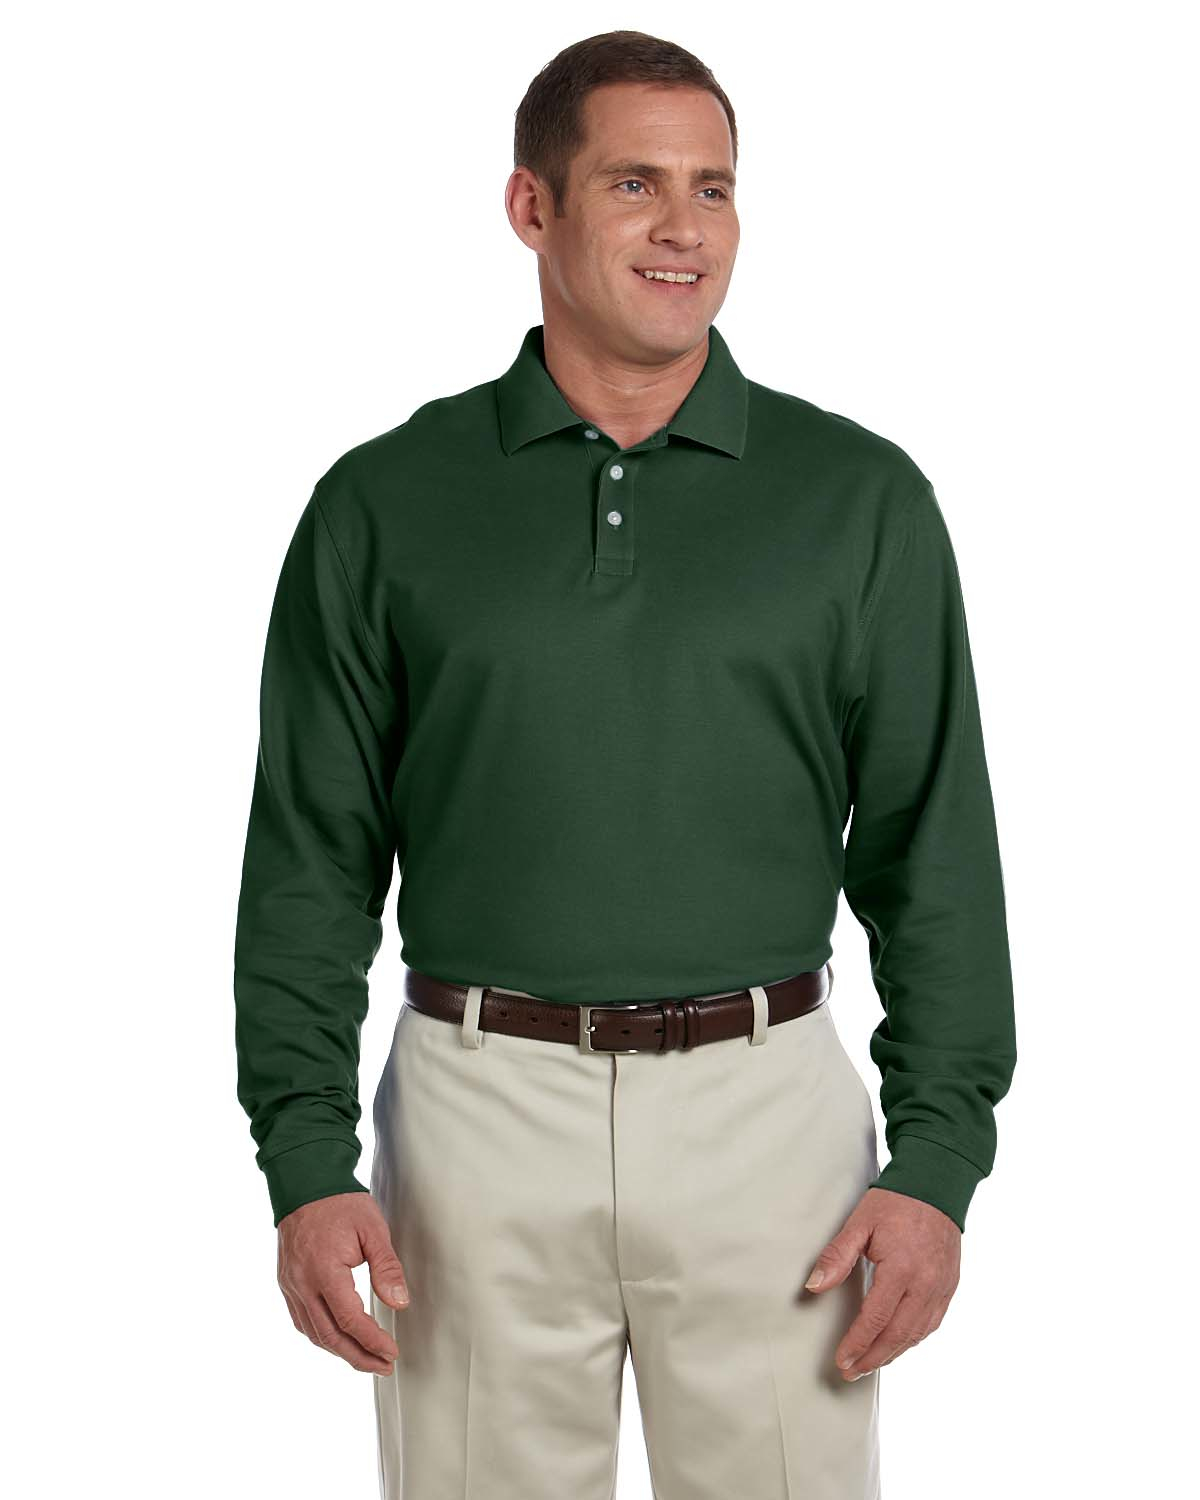 d110x Devon & Jones Men's Pima Piqué Long-Sleeve Polo 3xl-4xl